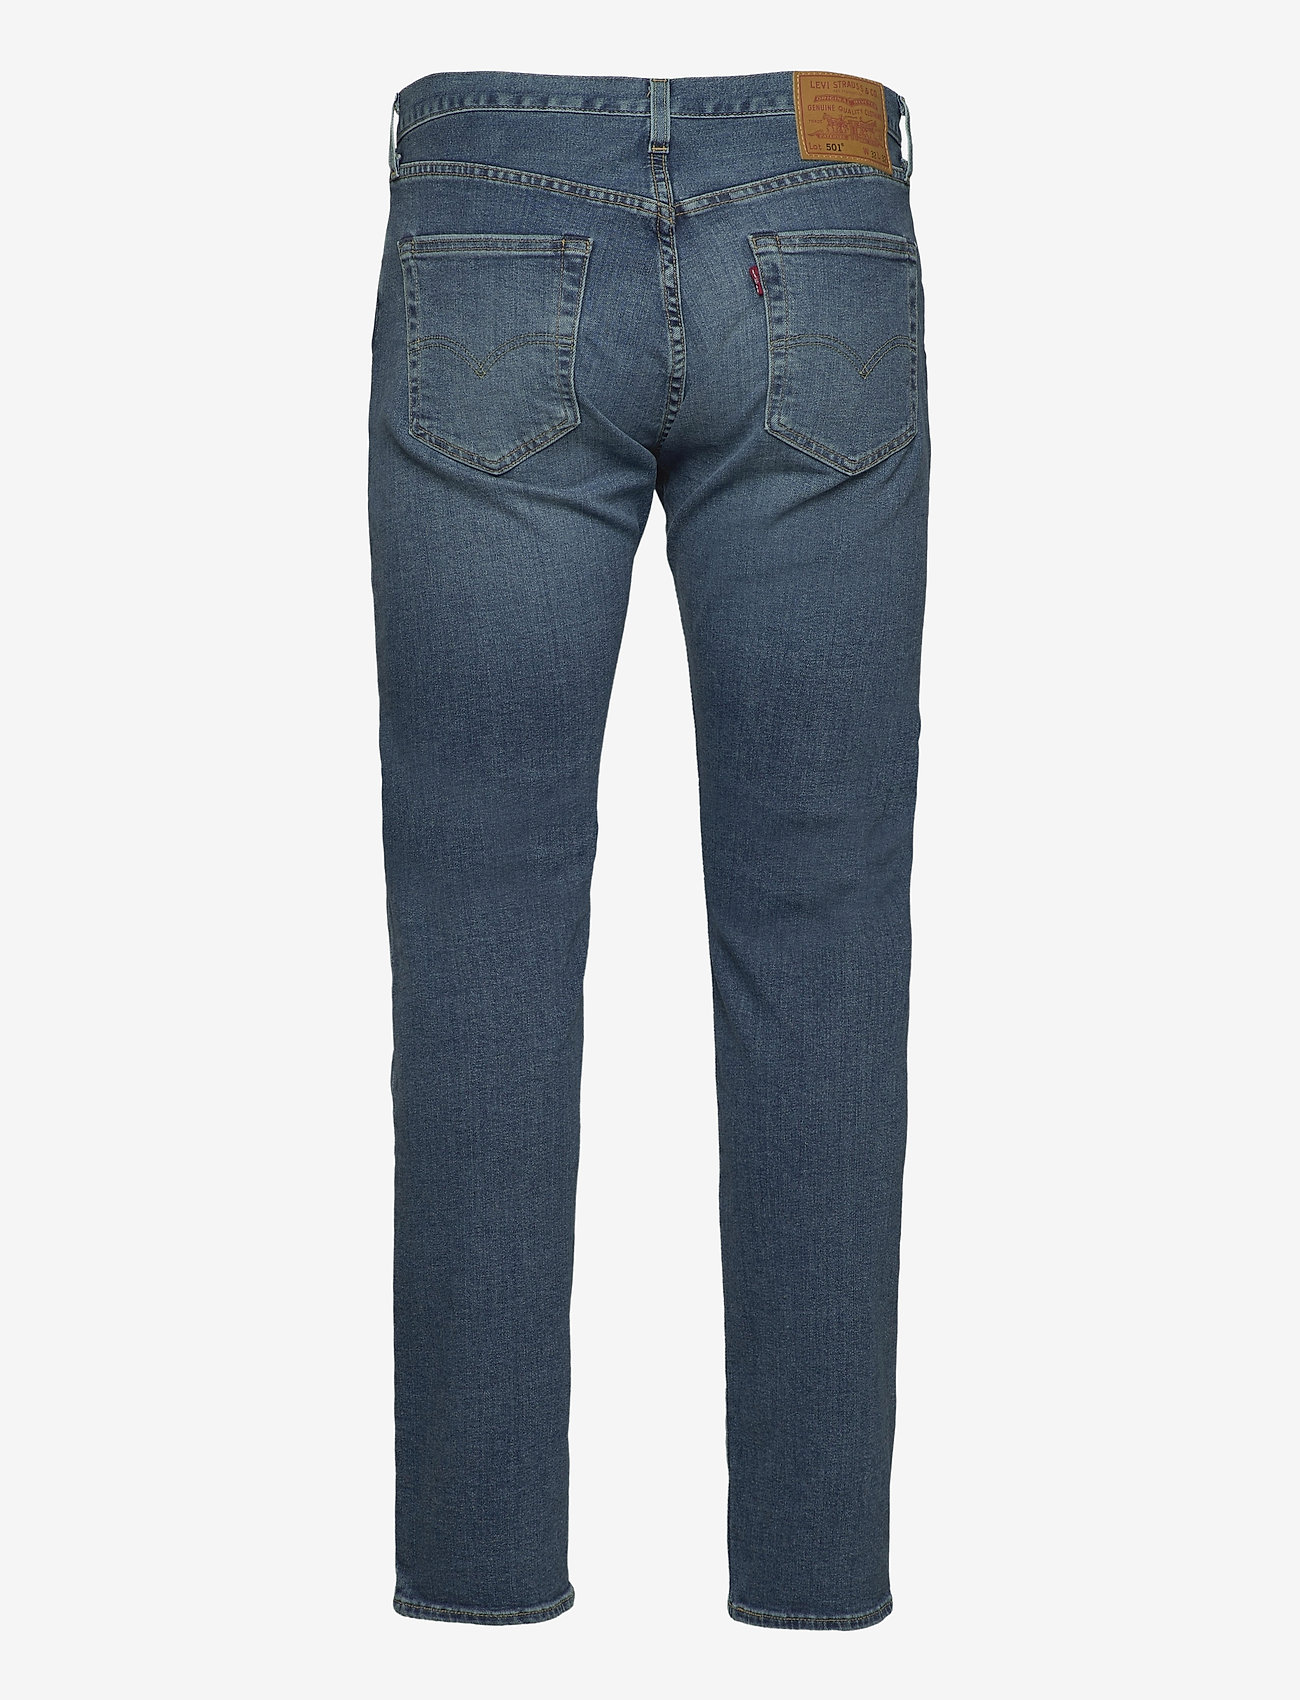 LEVI´S Men - 501 LEVISORIGINAL UBBLES - relaxed jeans - med indigo - worn in - 1